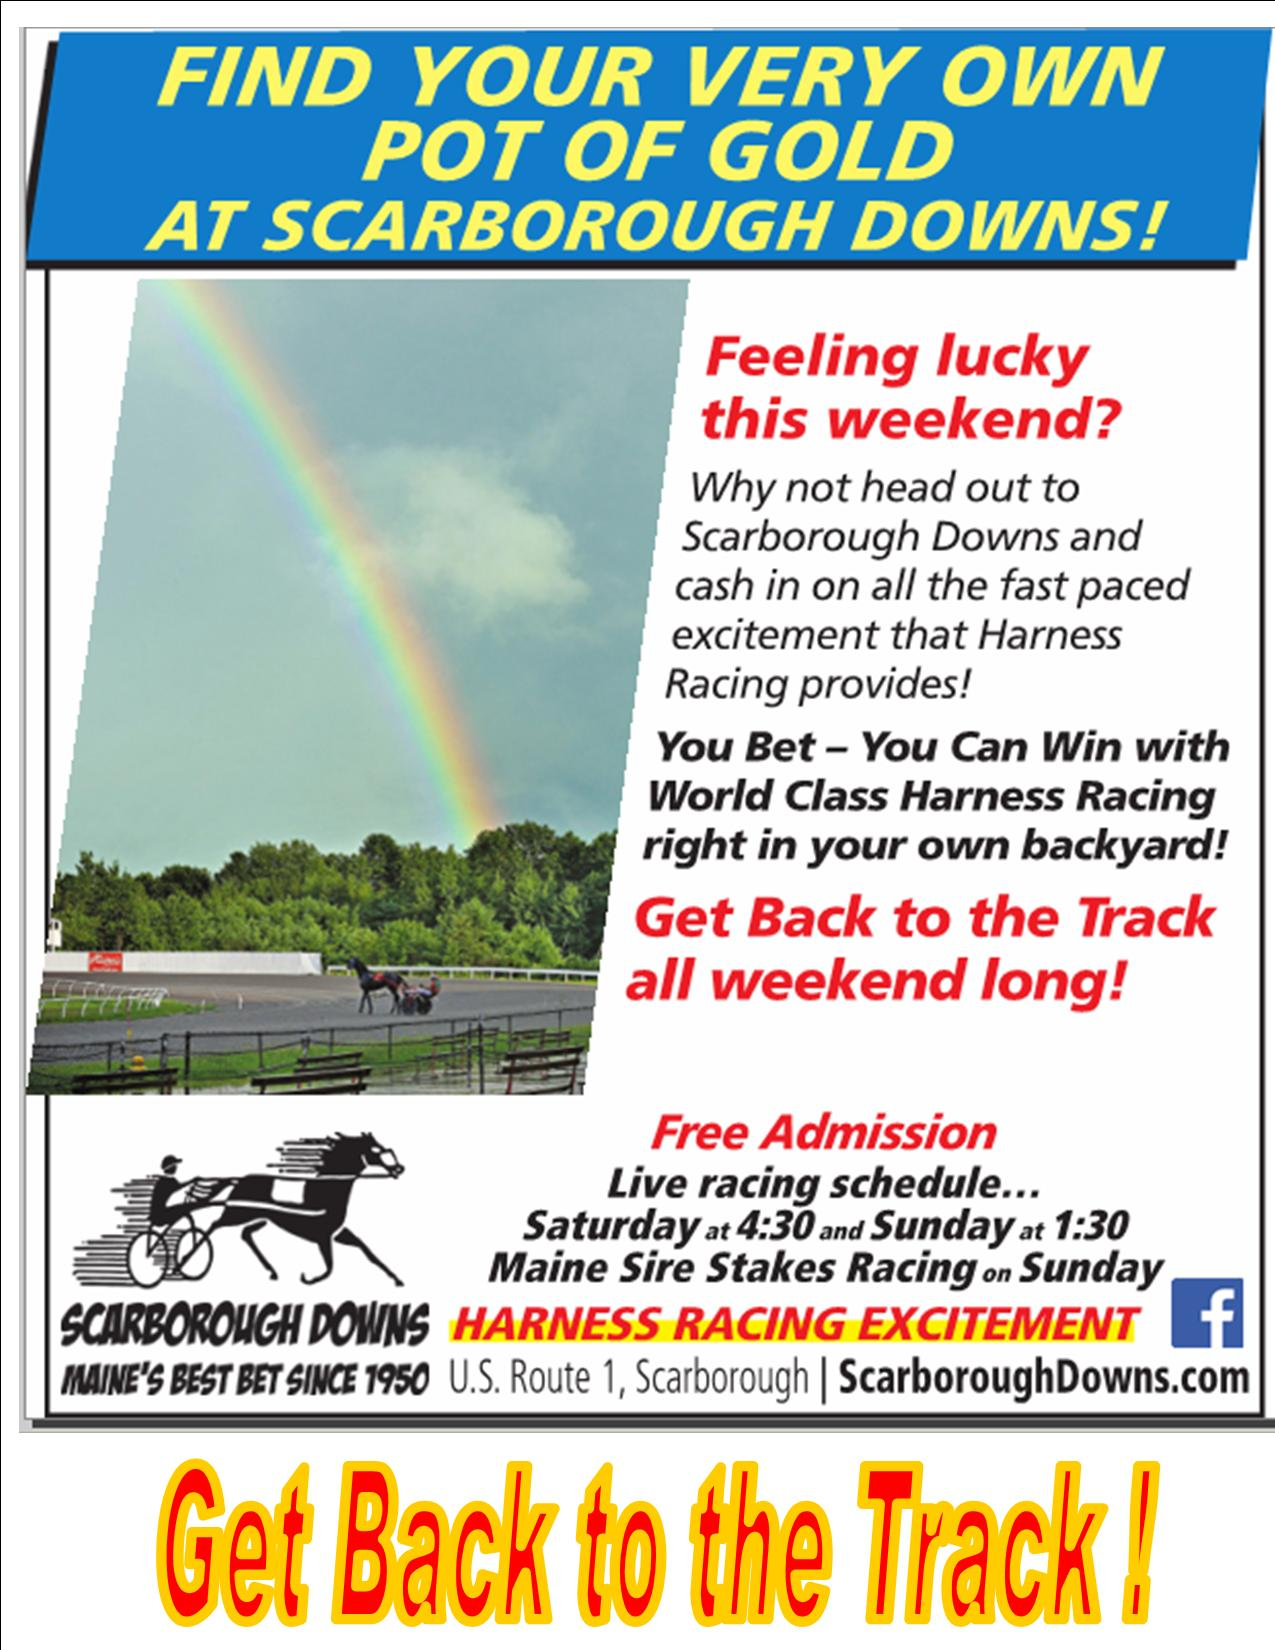 Scarborough Downs Maines Best Bet Since 1950